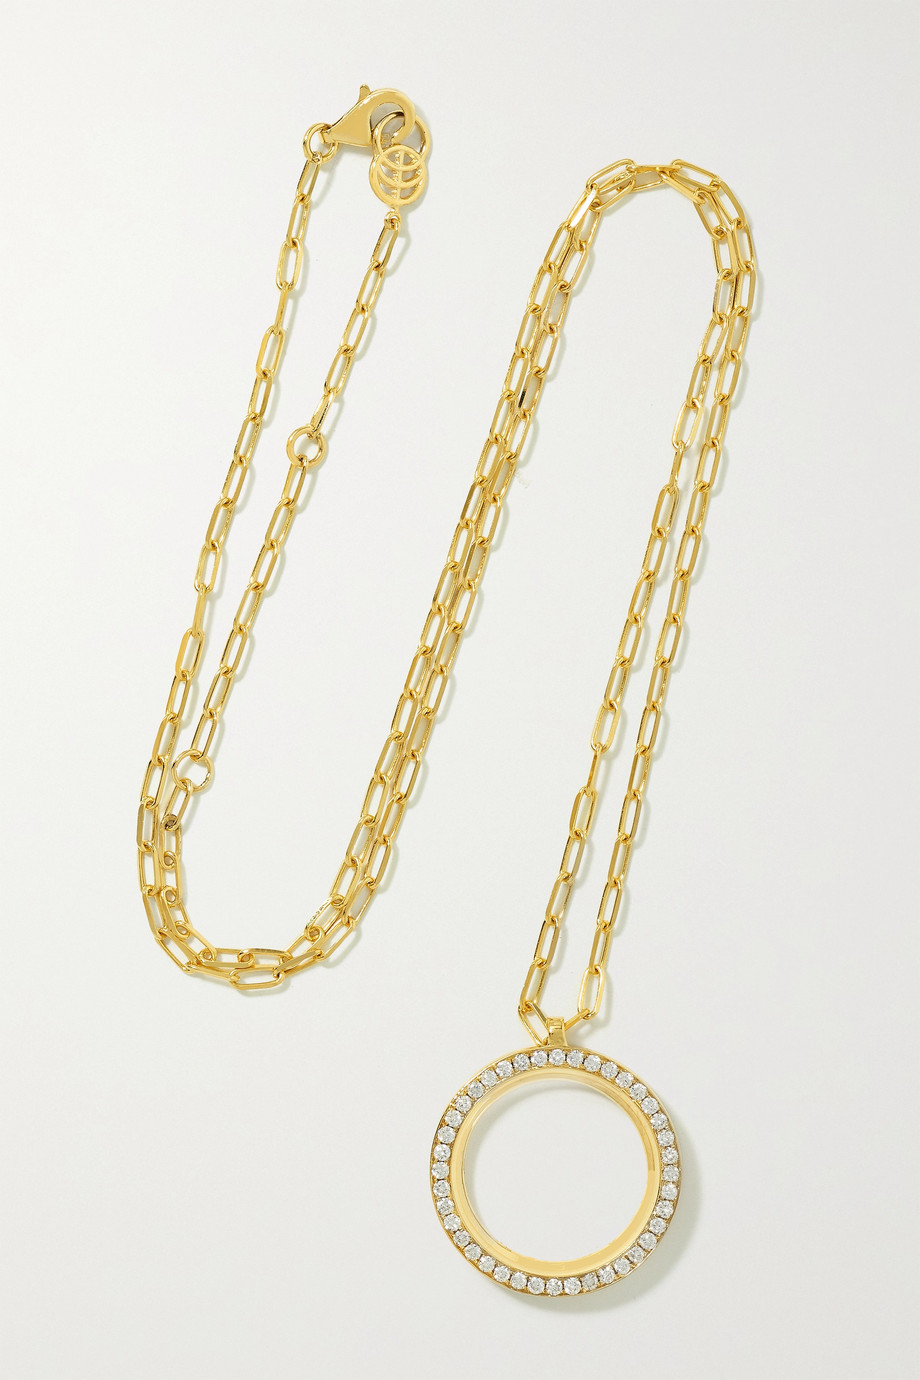 STATE PROPERTY George 18-karat gold, diamond and onyx necklace